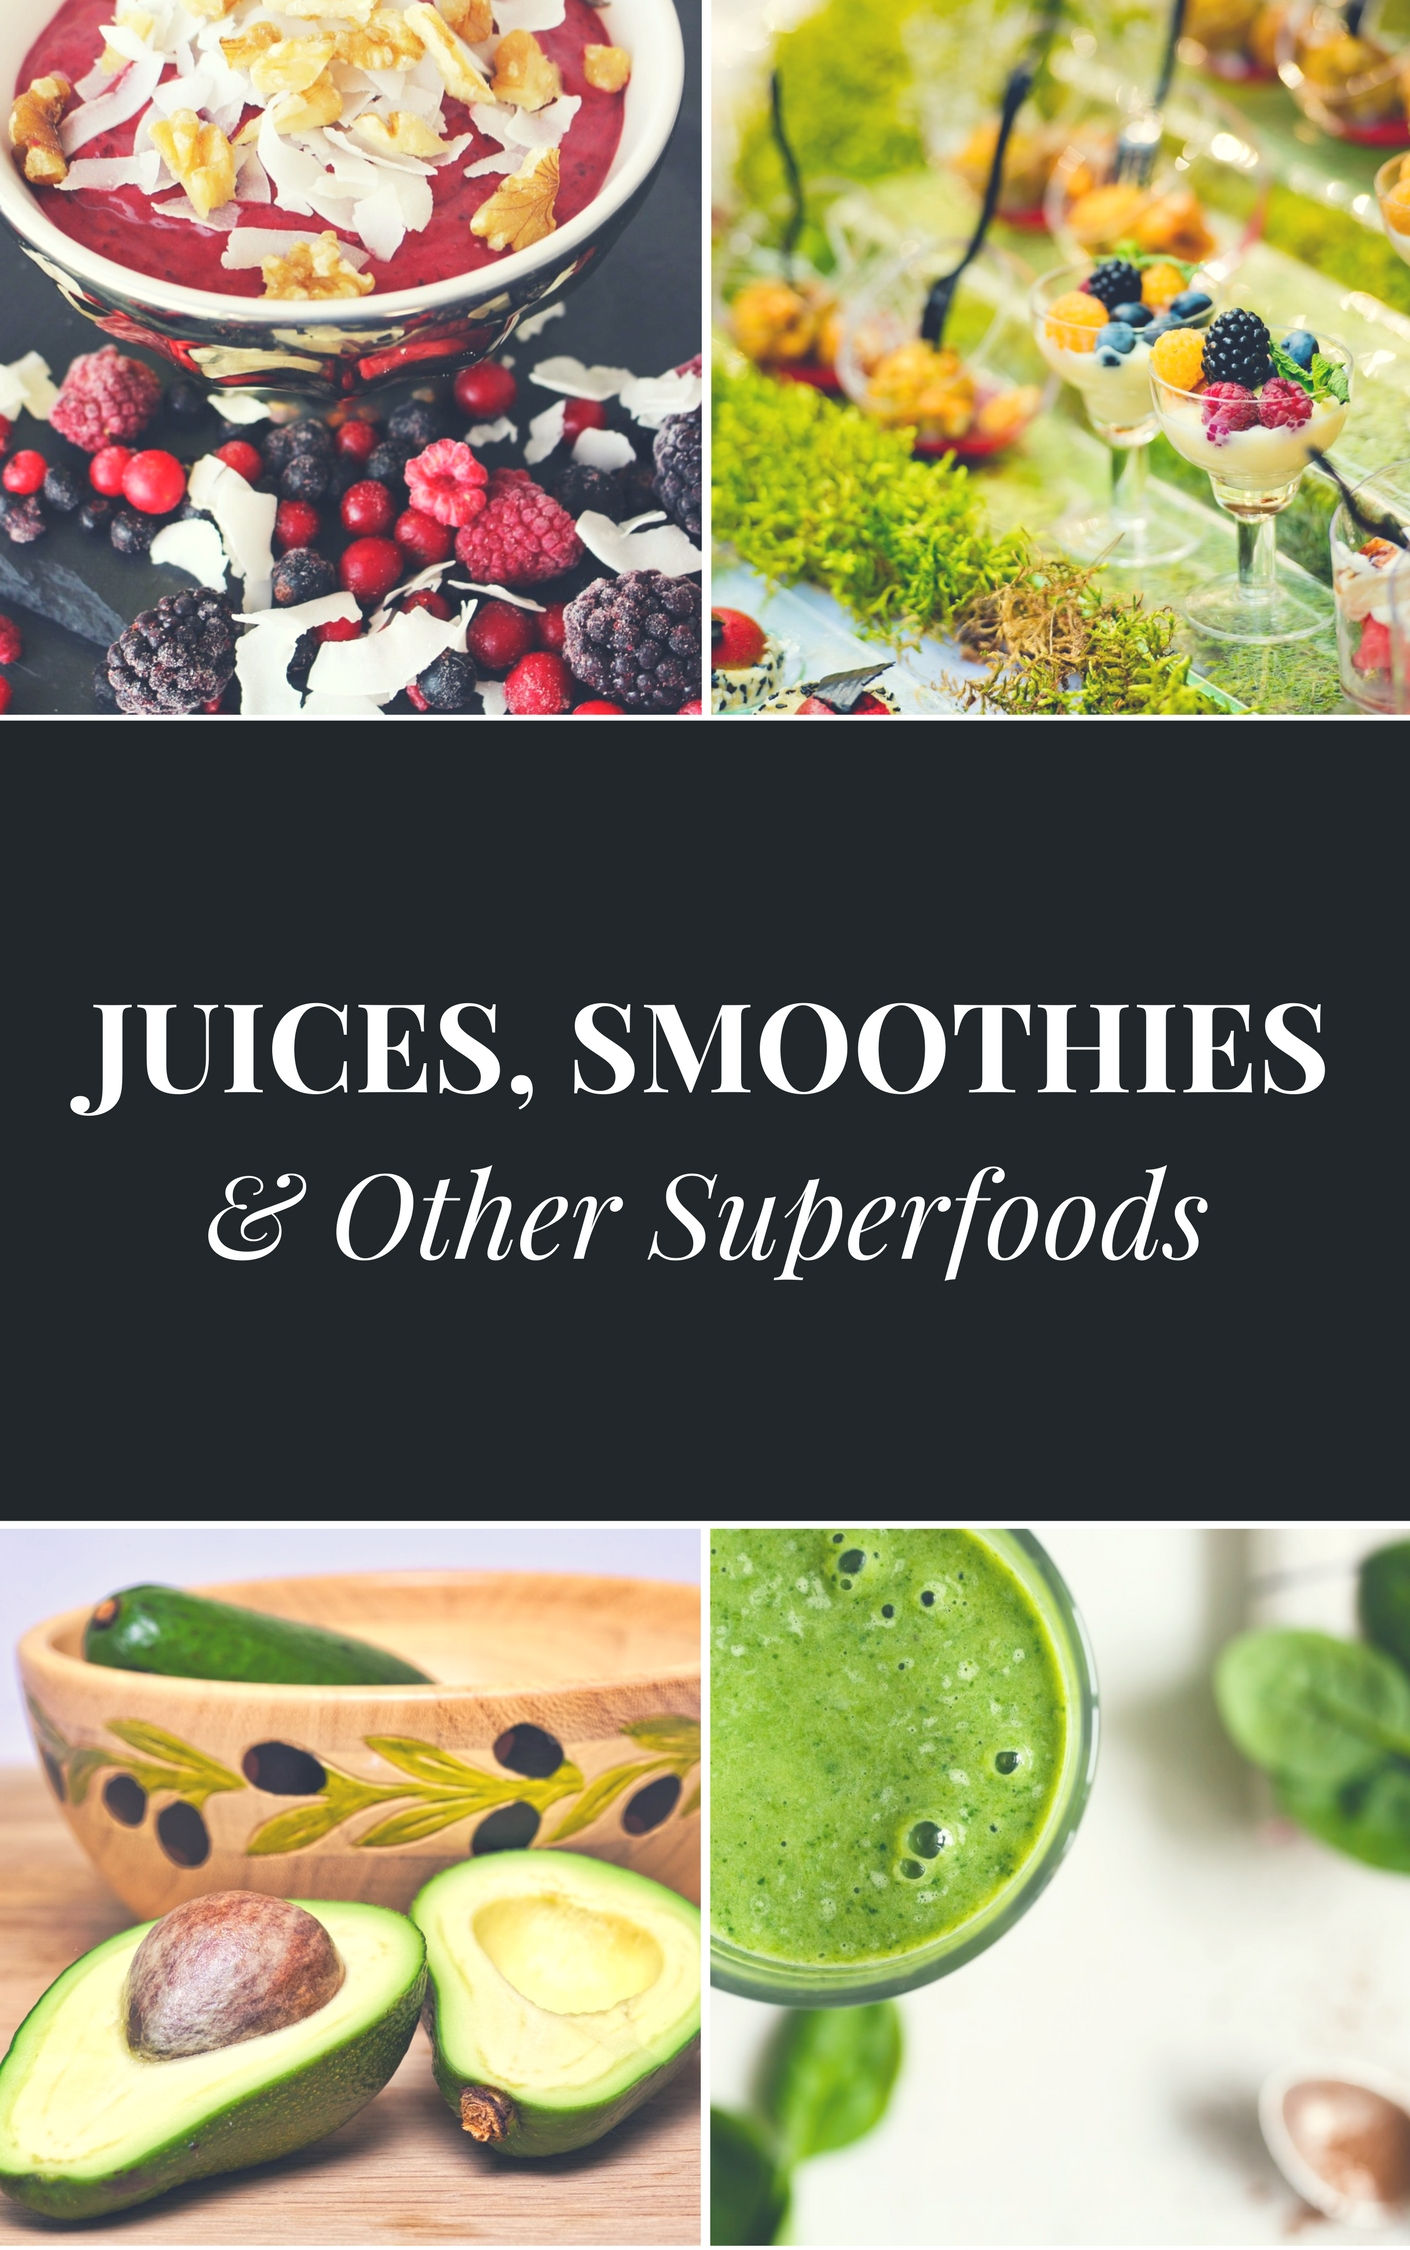 send 40 juice, smoothie, and superfood recipes with pictures